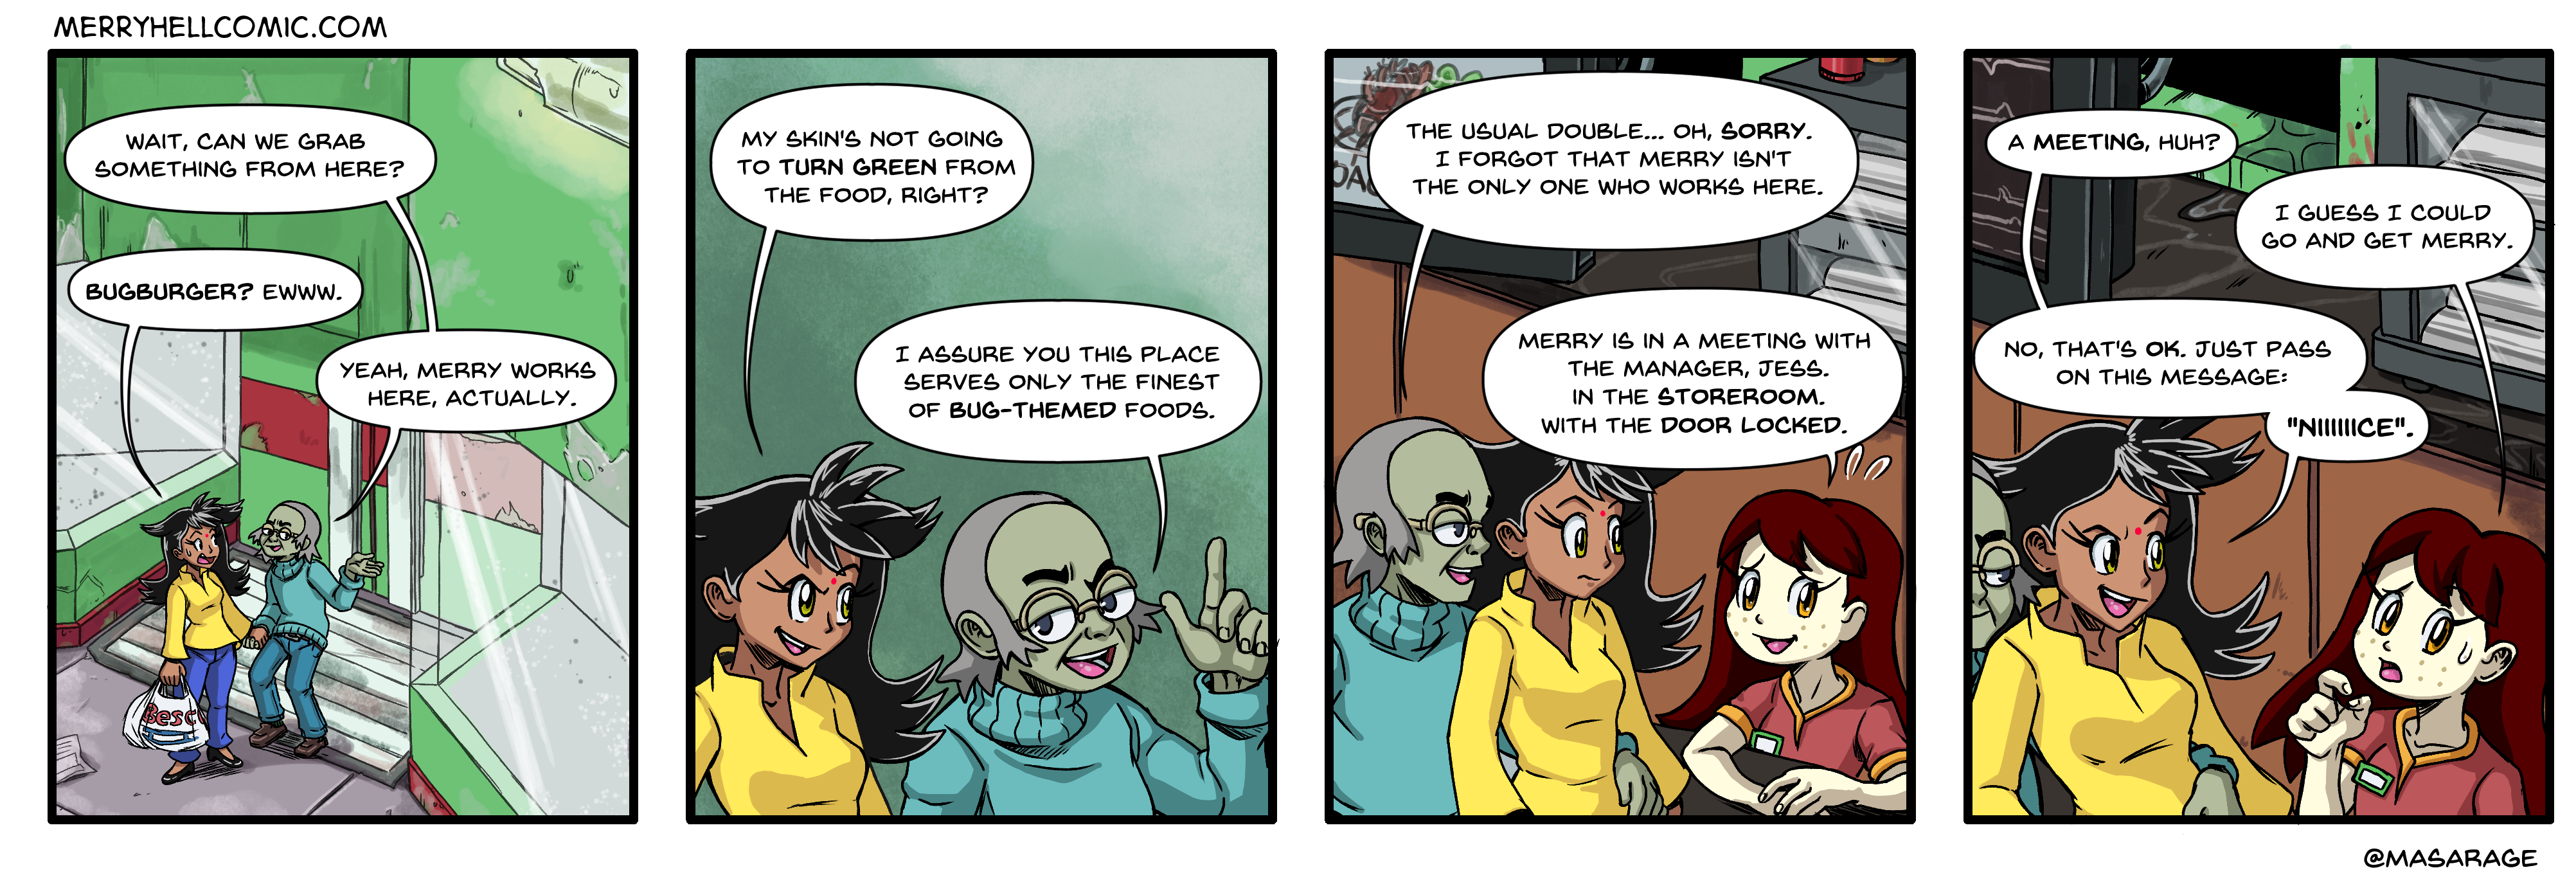 271. Guest strip by @Masarage IV